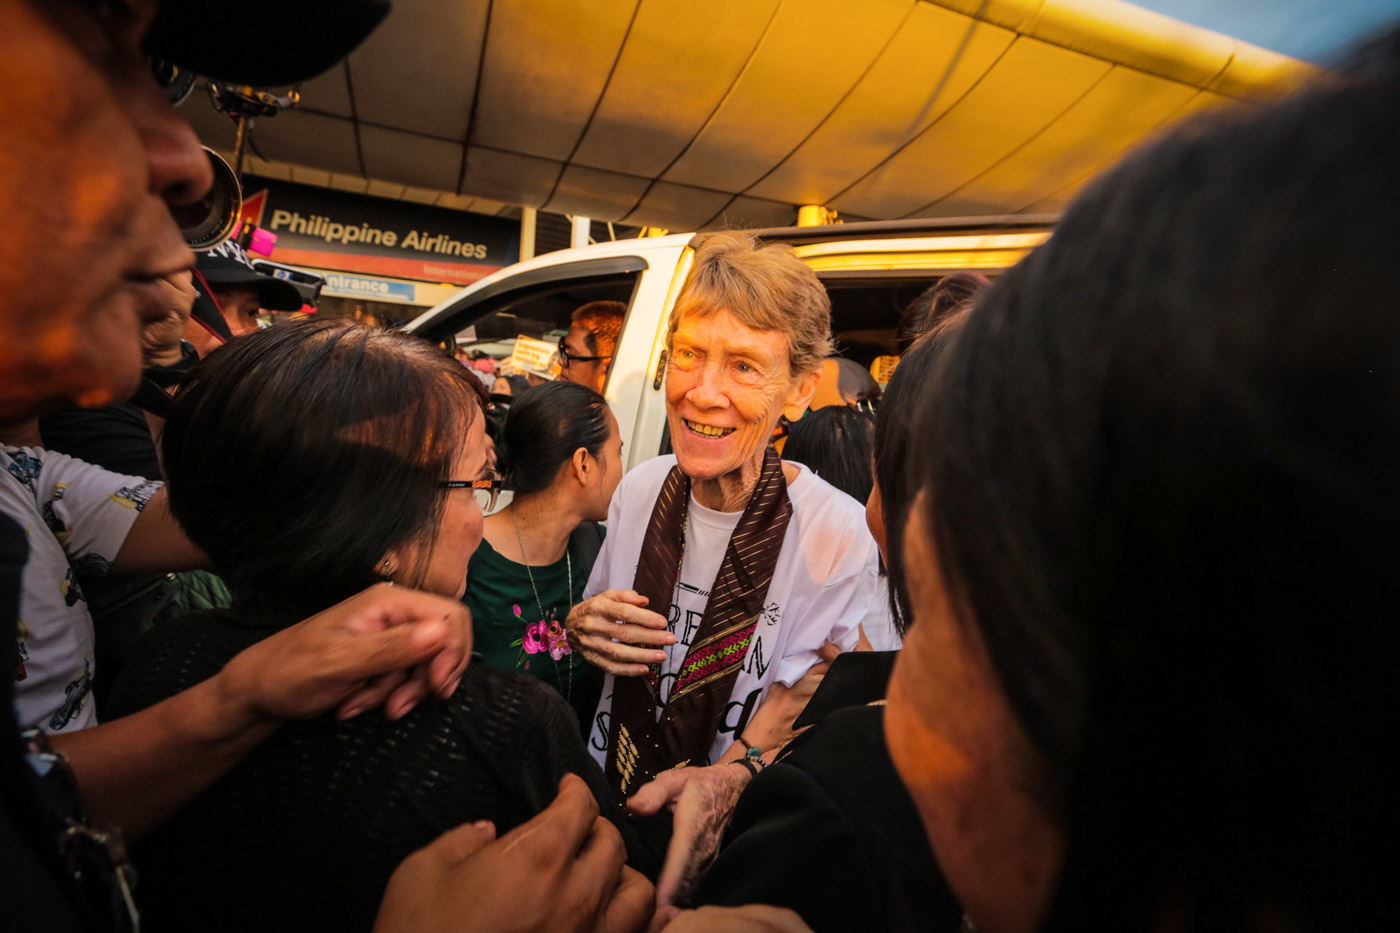 SEND-OFF. Australian nun Sister Patricia Fox arrives at the Philippines' Ninoy Aquino International Airport on November 3, 2018, as a huge crowd gathers to send her off. Photo by Jire Carreon/Rappler